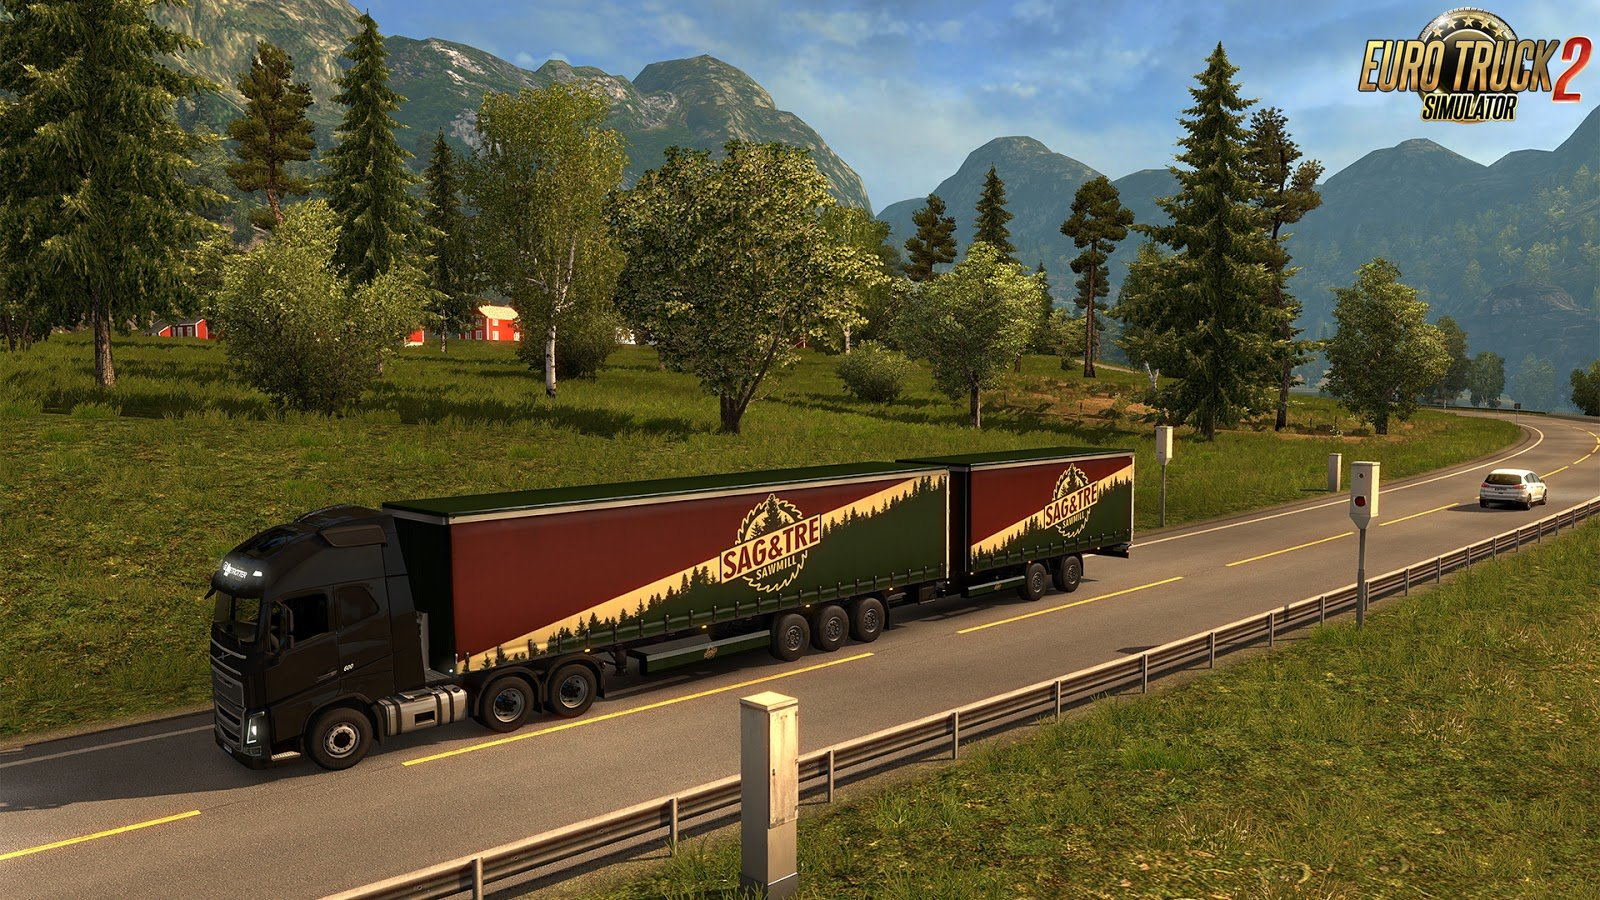 Euro Truck Simulator 2 Open Beta 1.28 released